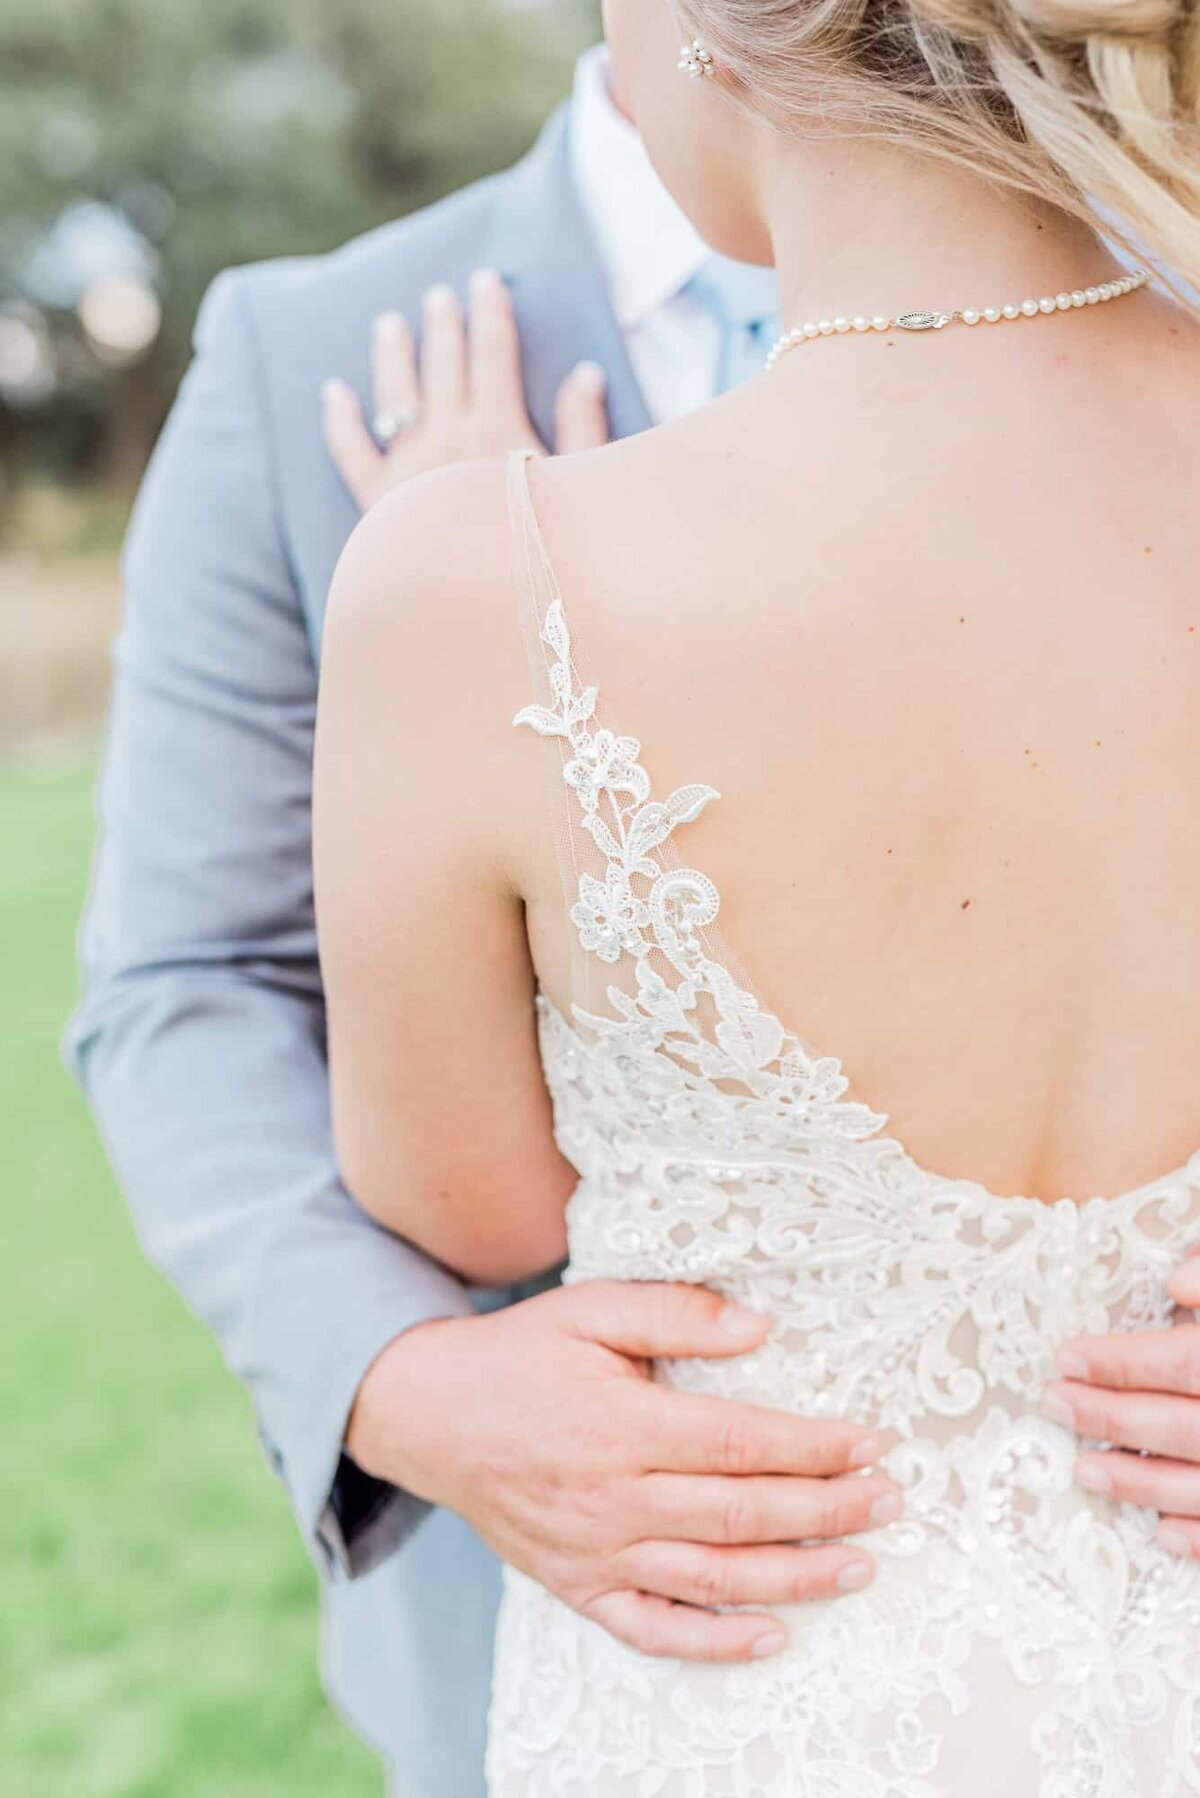 Lace wedding gown at Dallas wedding